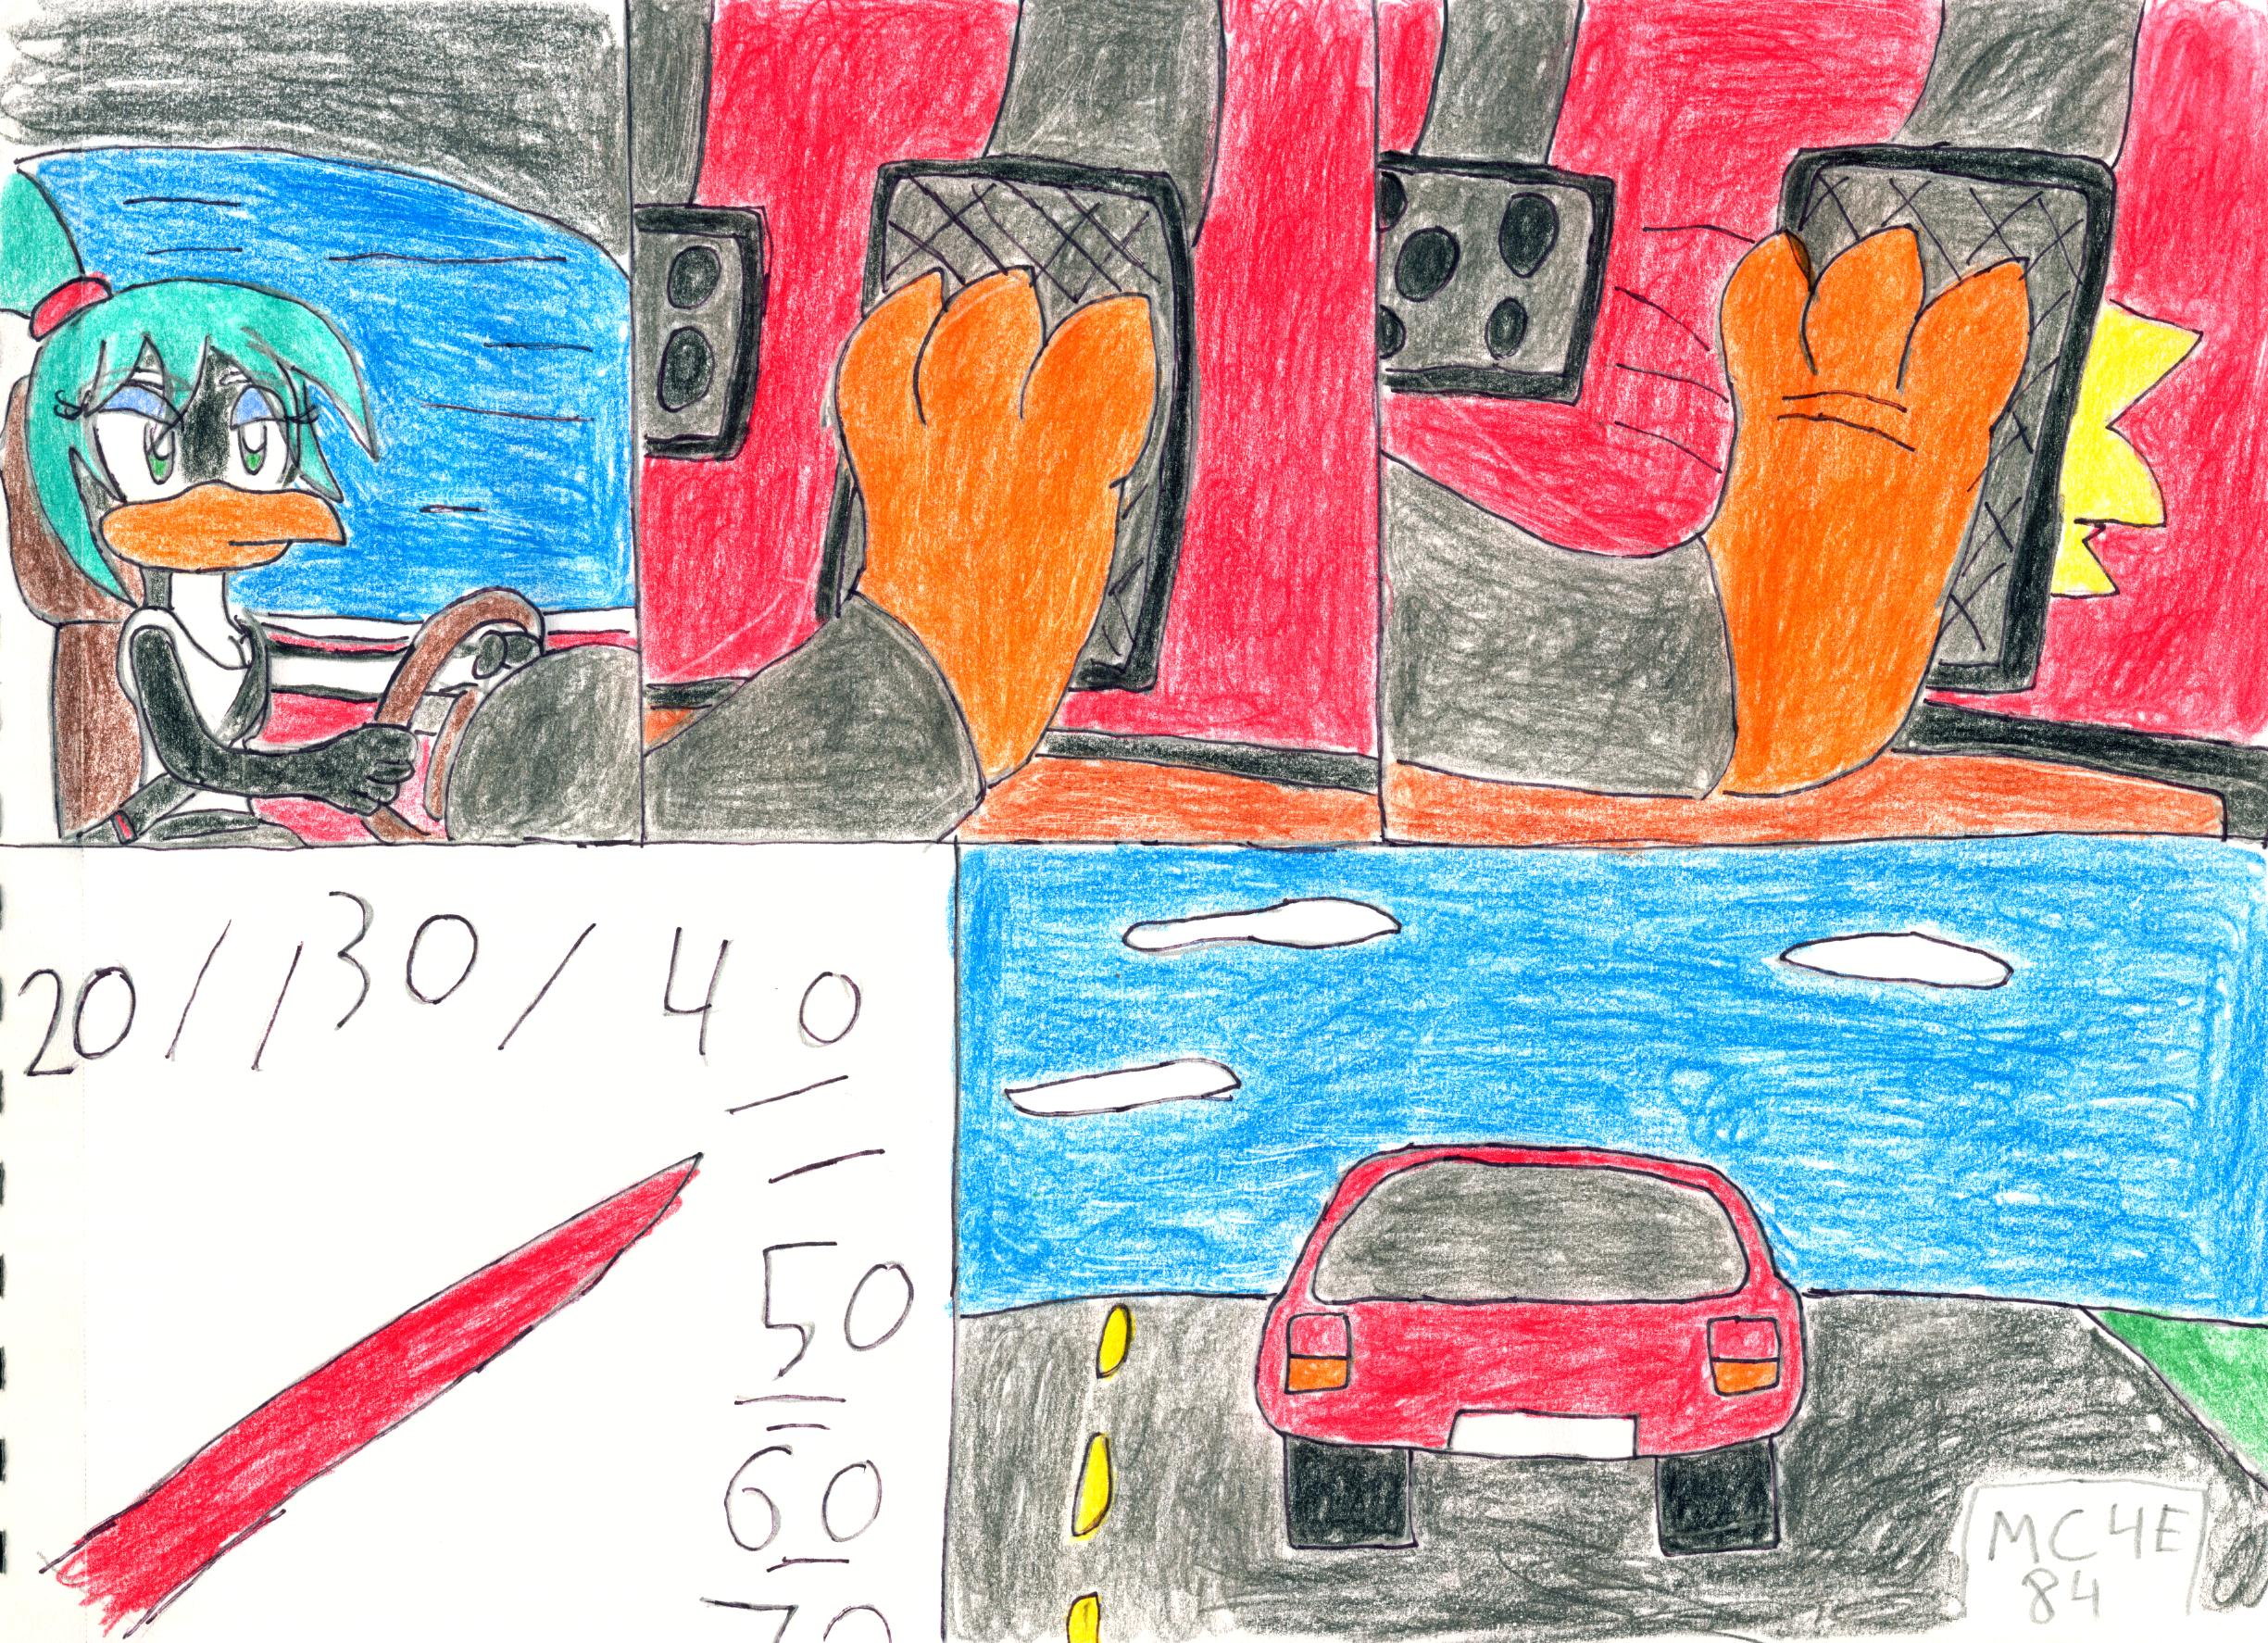 Pedal Pumping Flooring : Juley driving and flooring it by mc e on deviantart